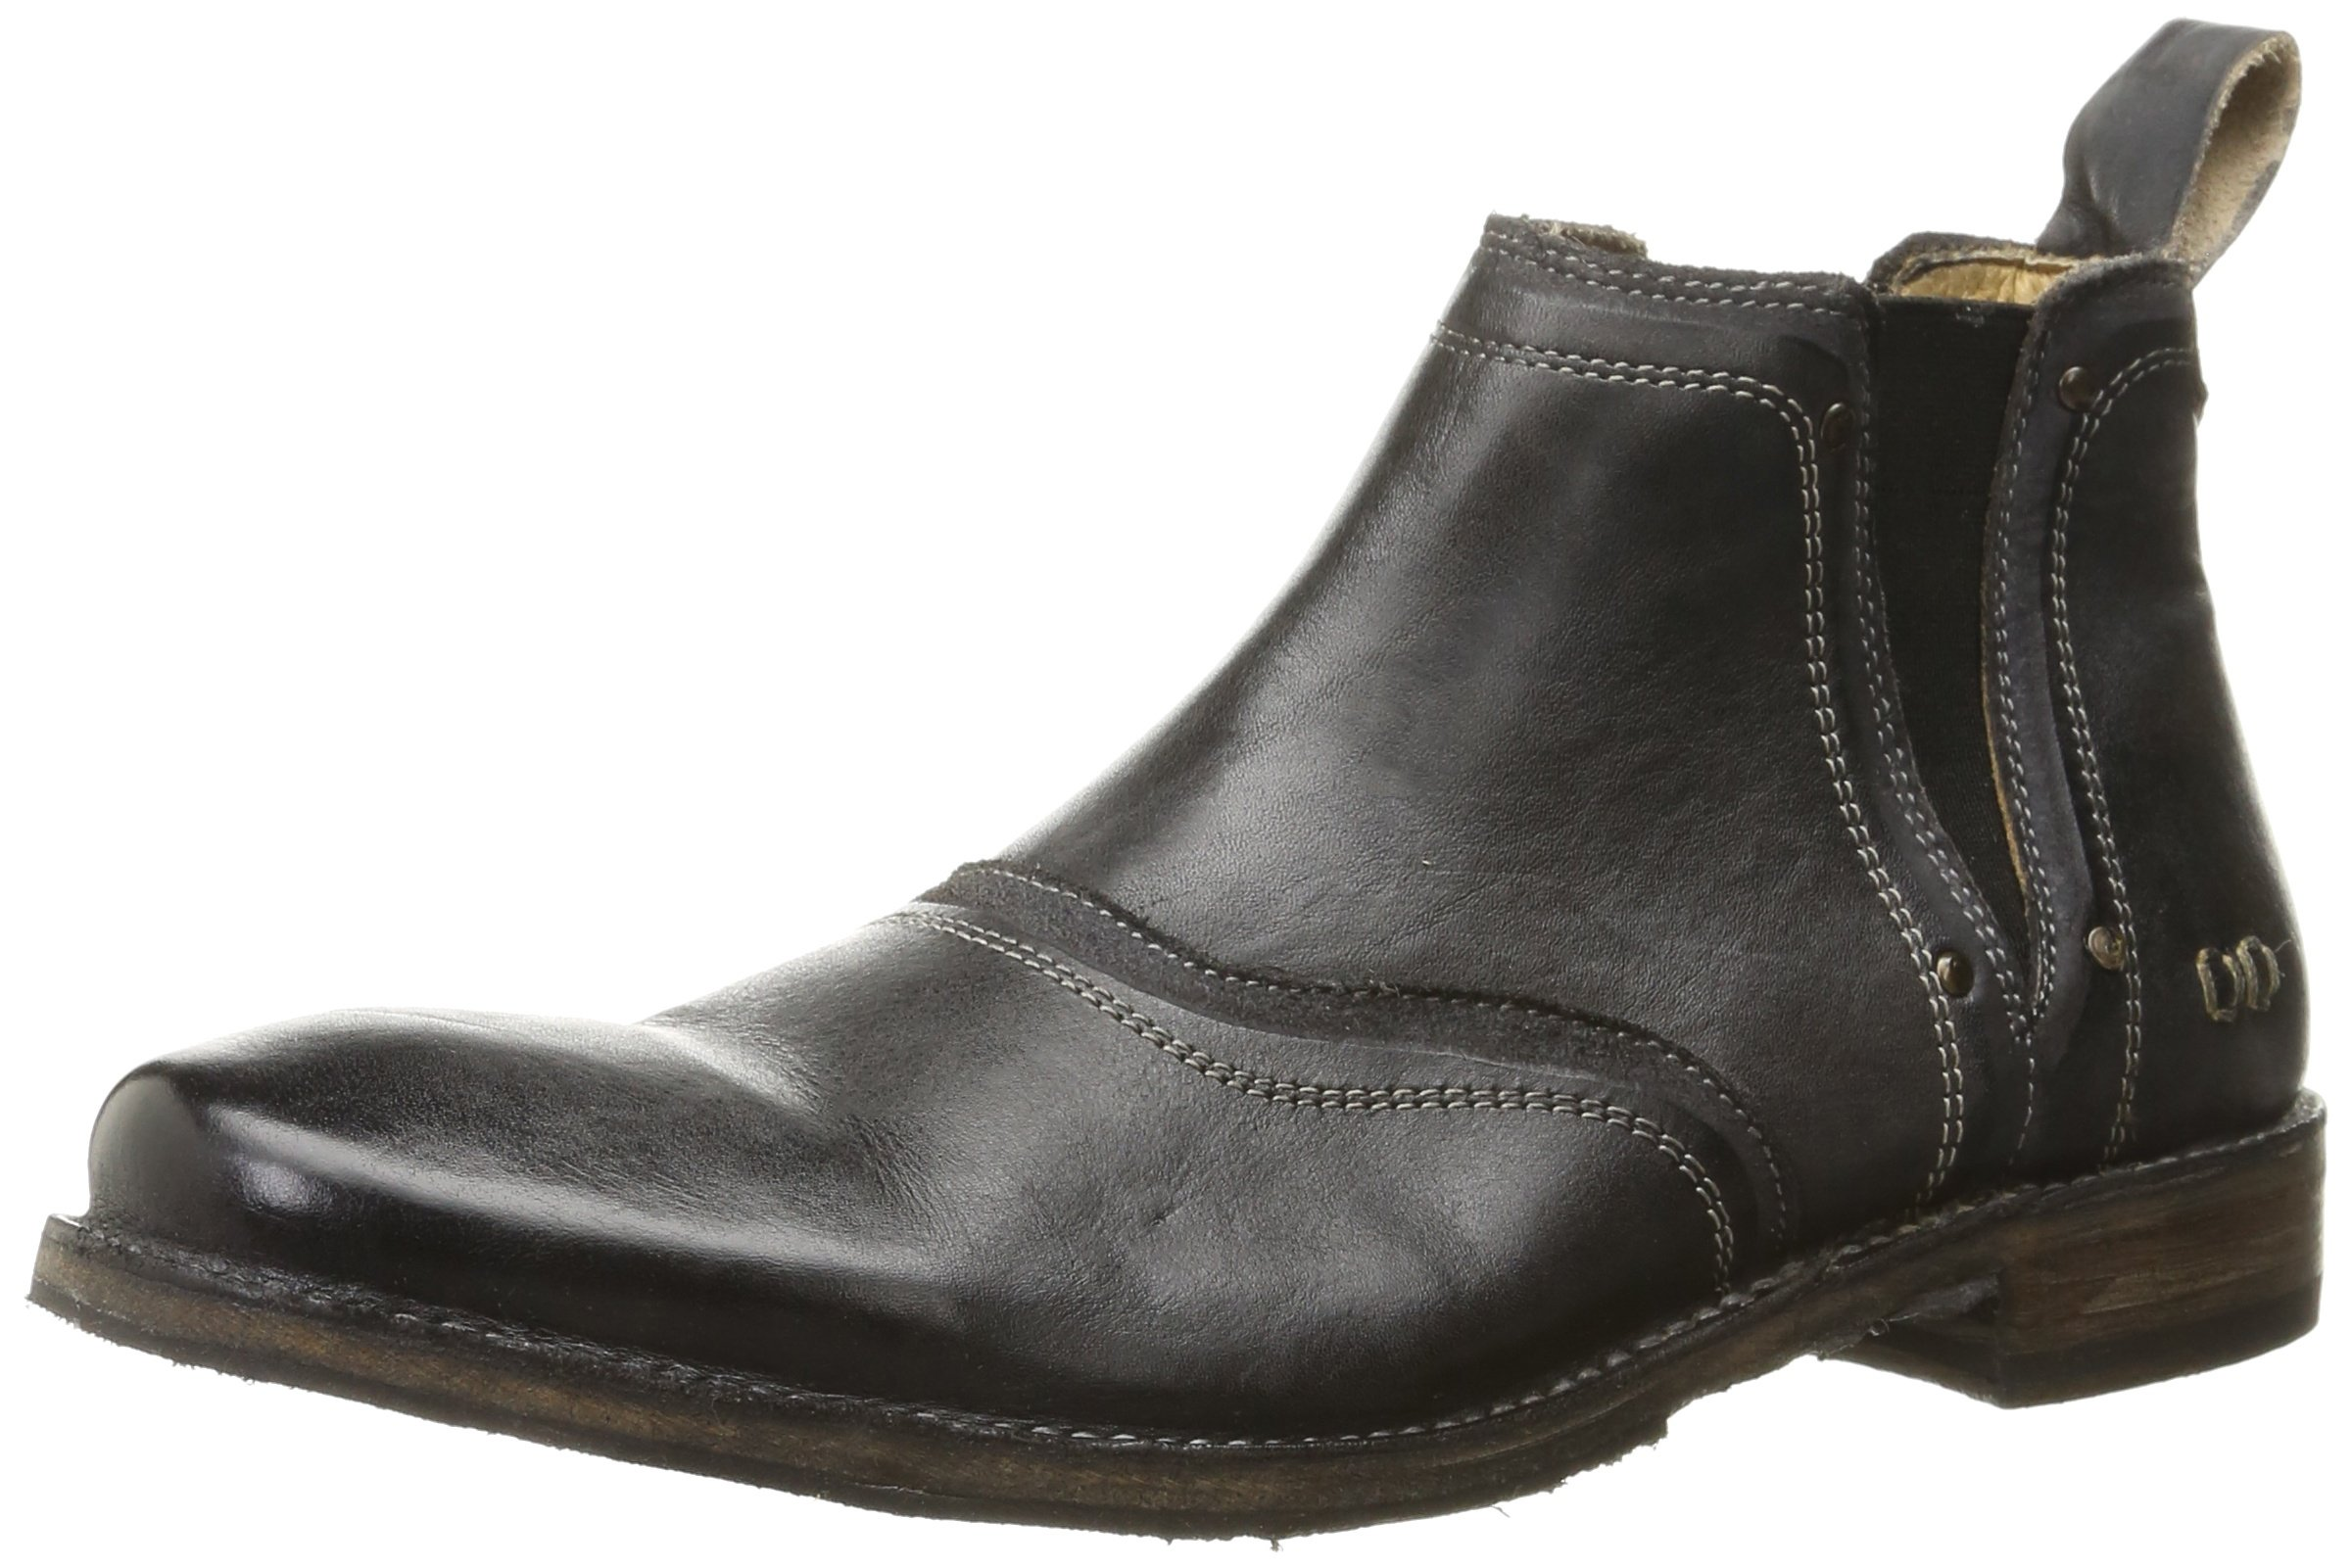 Bed Stu Men's Prato Chelsea Boot, Black Rustic, 10 M US